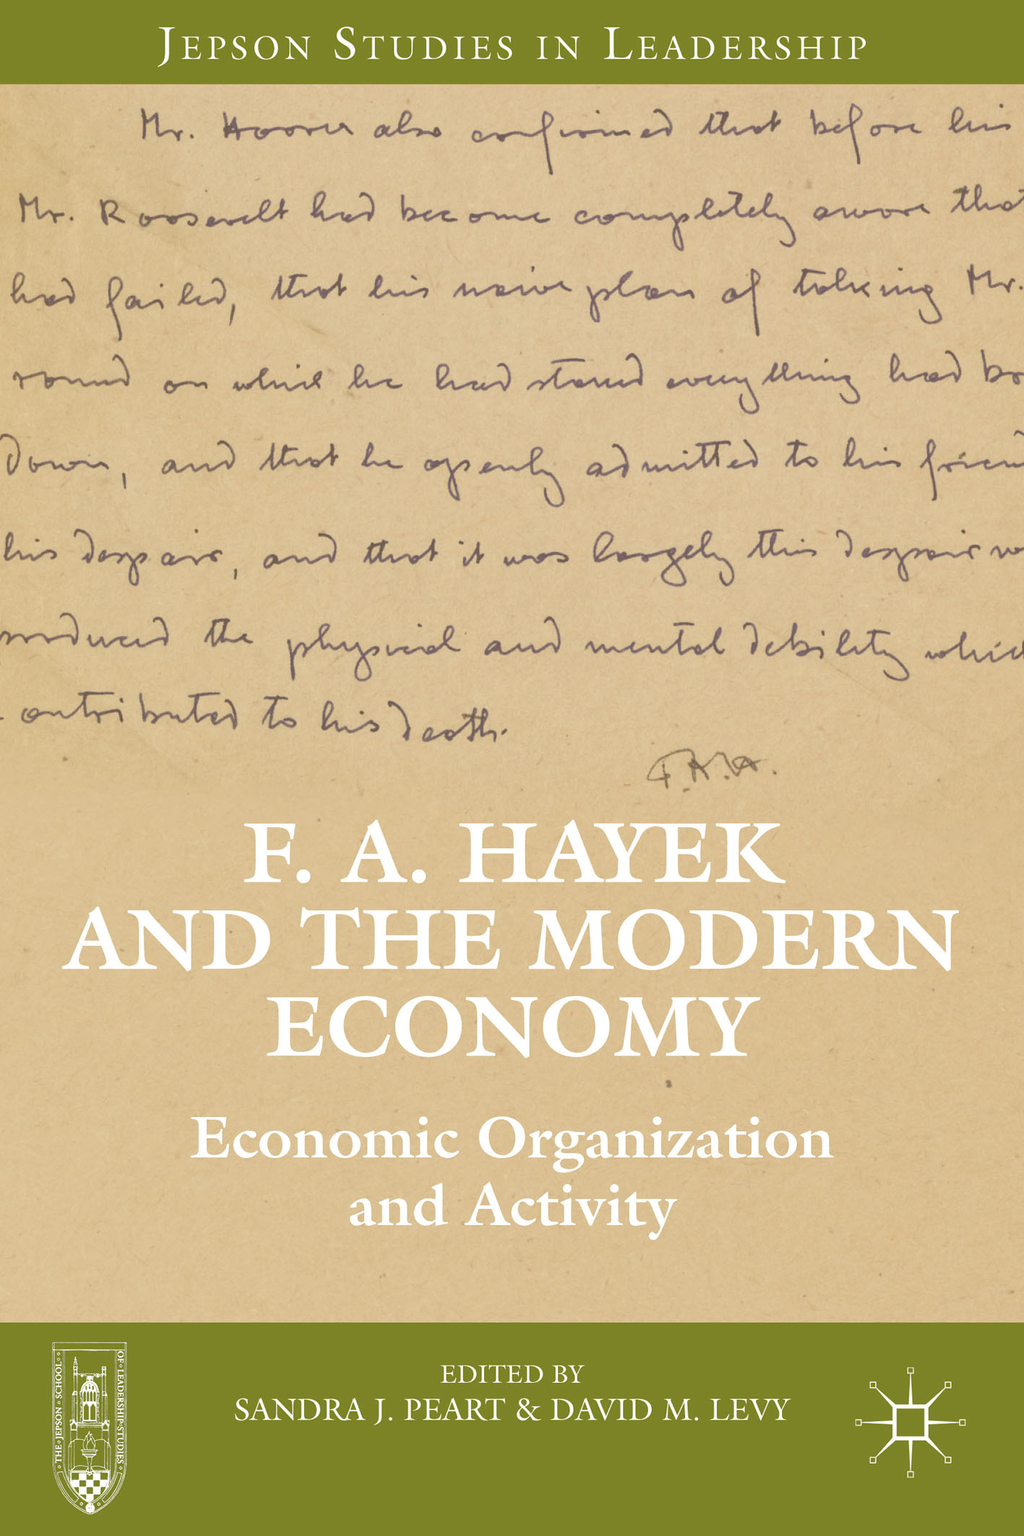 F. A. Hayek and the Modern Economy Economic Organization and Activity